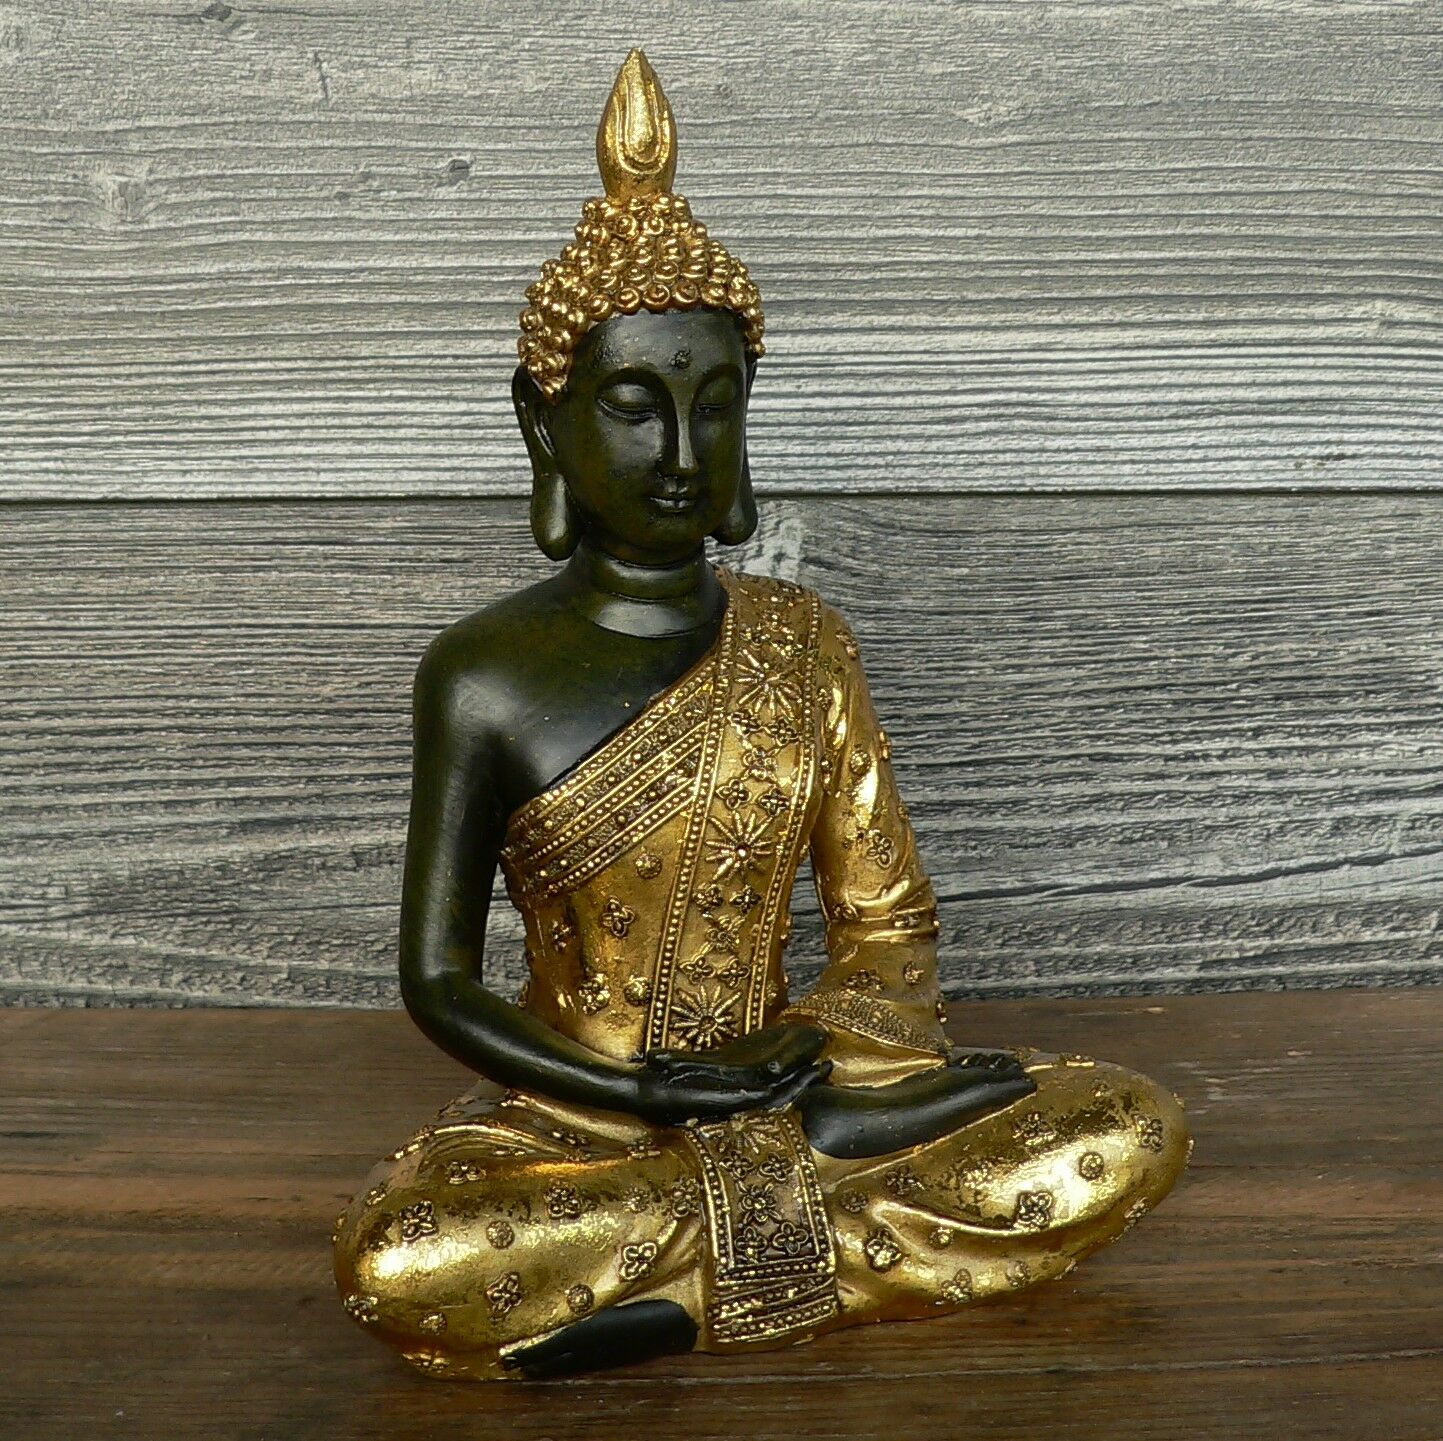 buddha gold sitzend 21cm gro feng shui statue figur skulptur schneidersitz neu eur 18 90. Black Bedroom Furniture Sets. Home Design Ideas